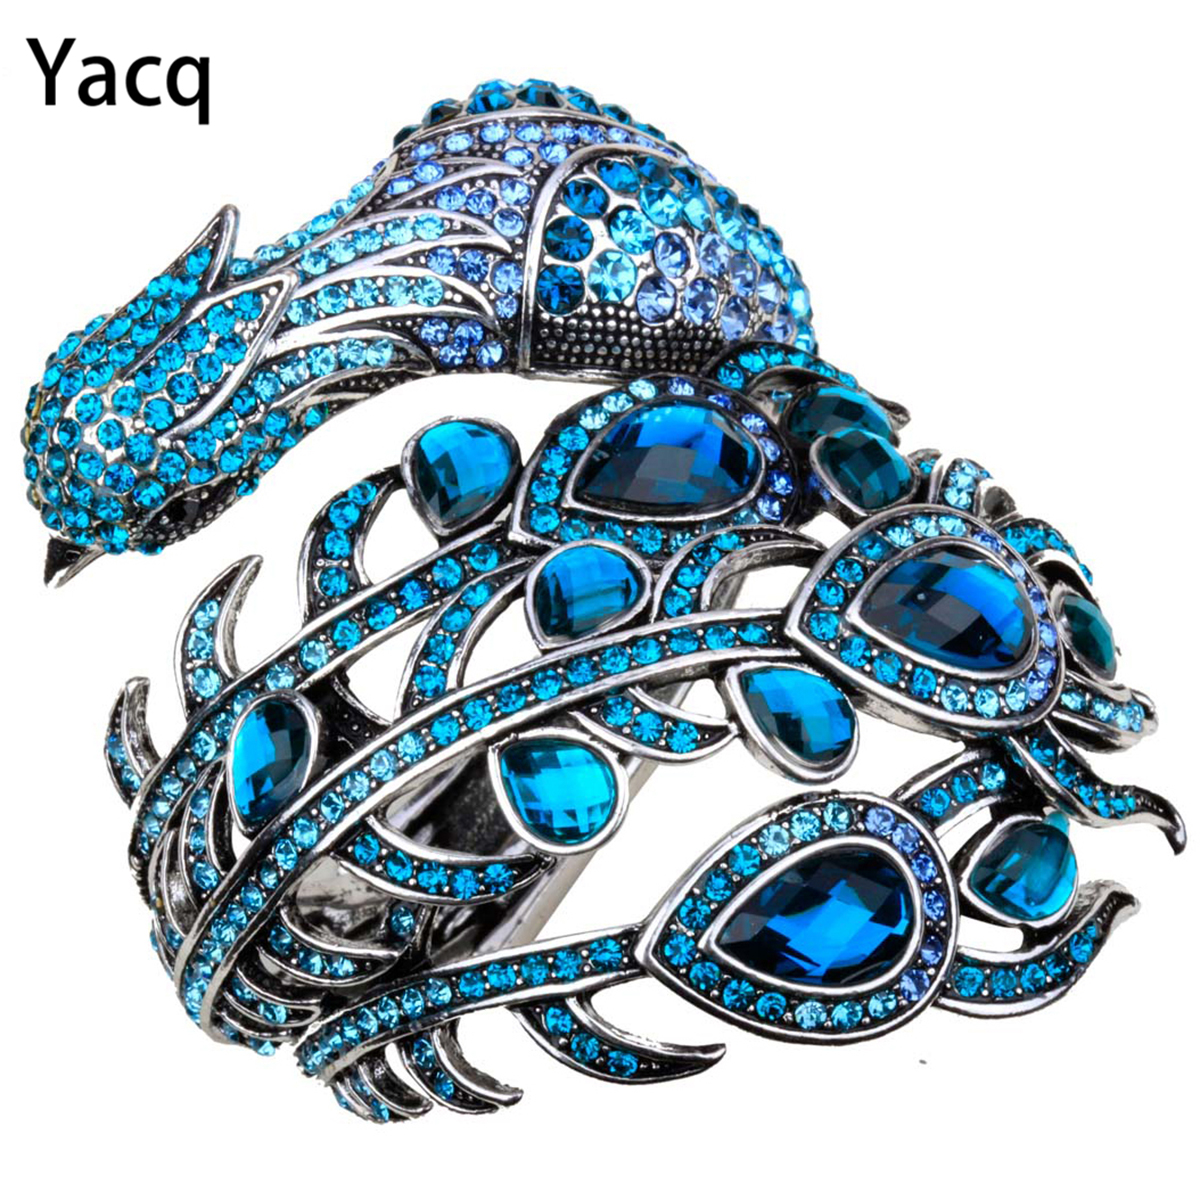 YACQ Peacock Käevõru Naised Kristall Bangle Cuff Punk Rock Fashion Ehted Kingitused Girlfriend Naine Tema ema A29 Dropshipping